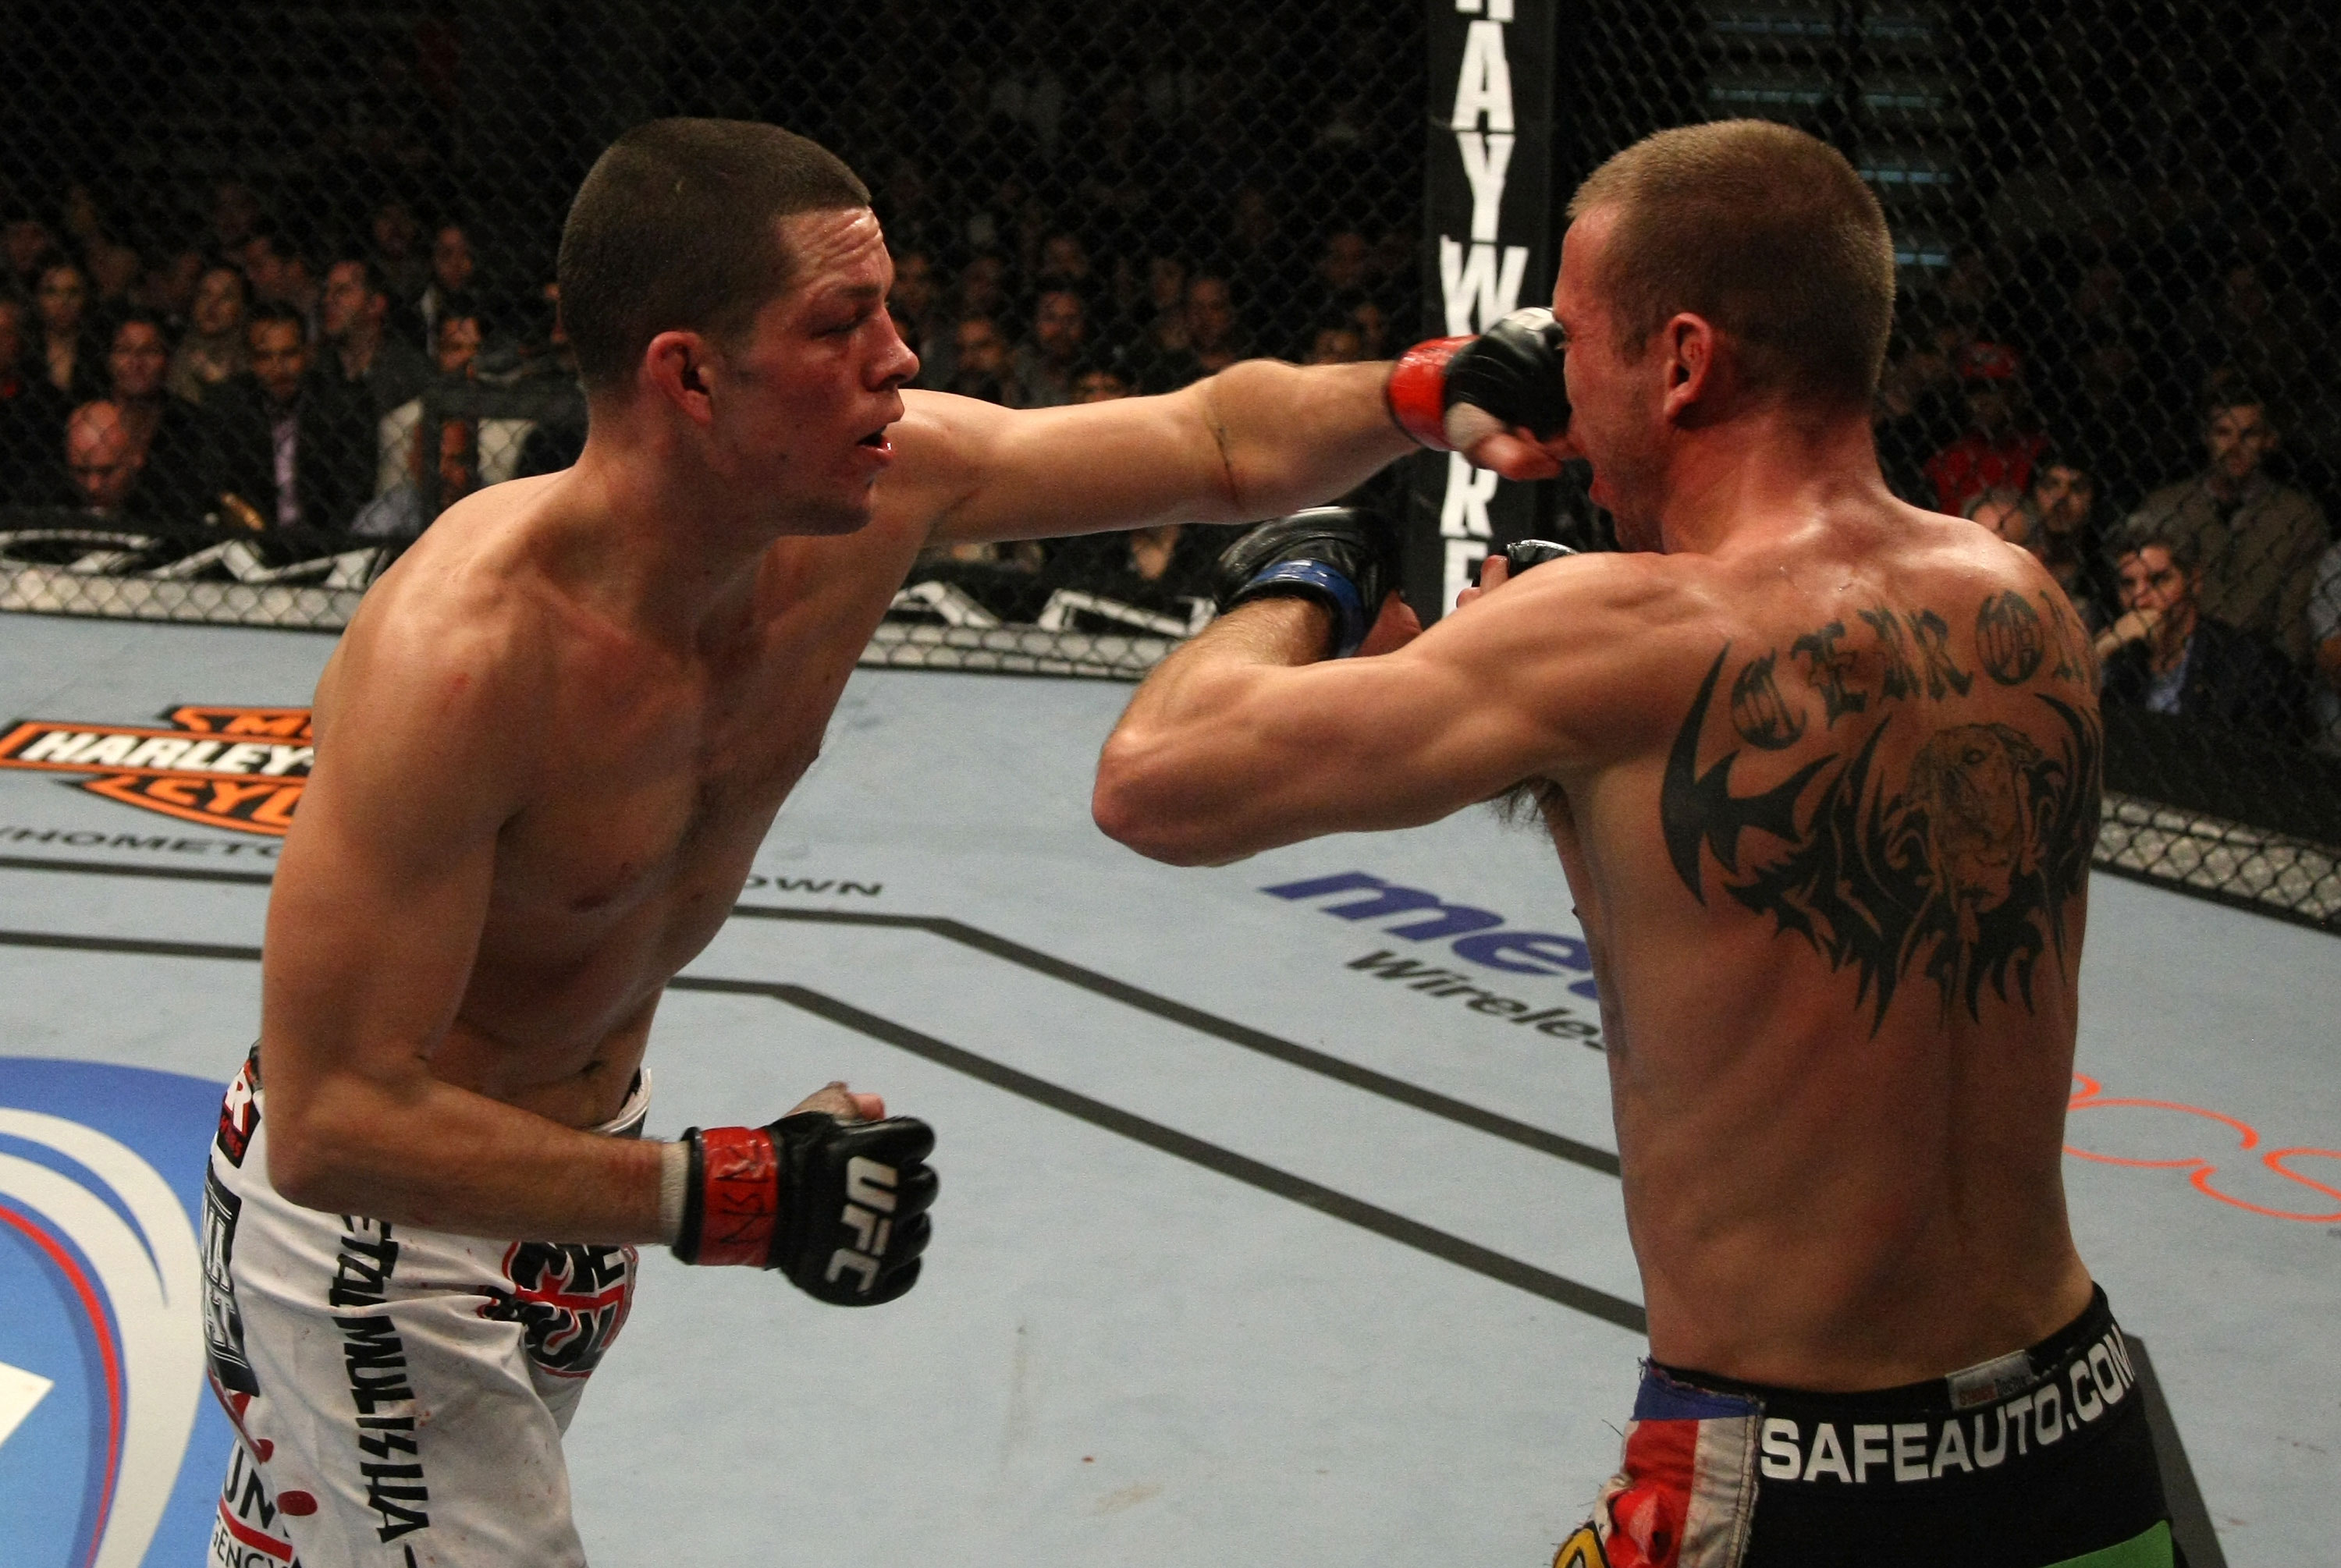 LAS VEGAS, NV - DECEMBER 30:  Nate Diaz (left) punches Donald Cerrone during the UFC 141 event at the MGM Grand Garden Arena on December 30, 2011 in Las Vegas, Nevada.  (Photo by Donald Miralle/Zuffa LLC/Zuffa LLC via Getty Images) *** Local Caption *** Nate Diaz; Donald Cerrone